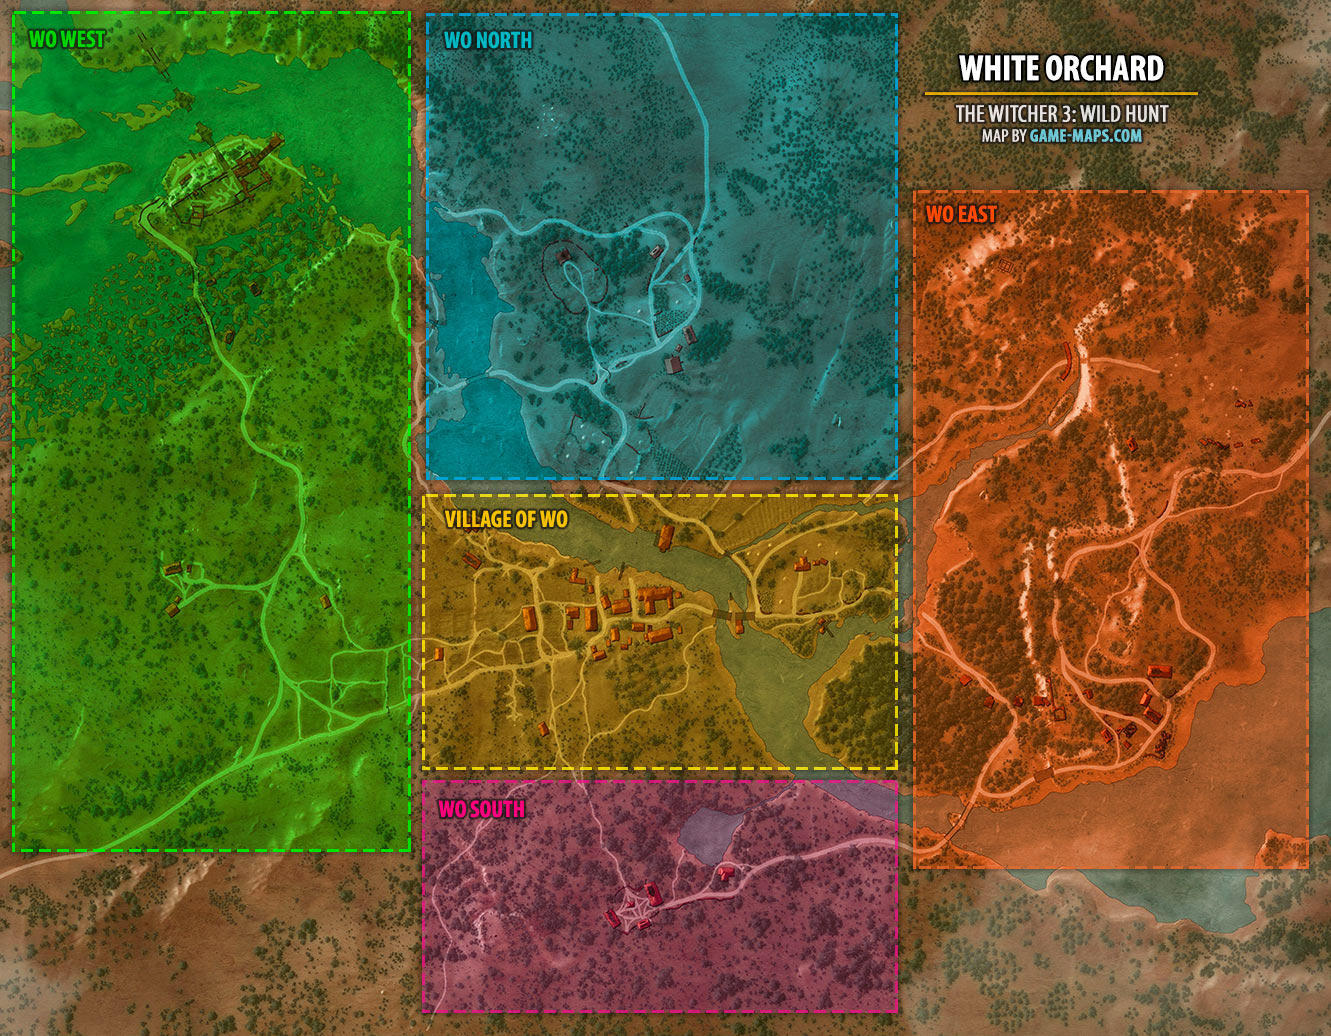 White Orchard Map - The Witcher 3 | game-maps.com